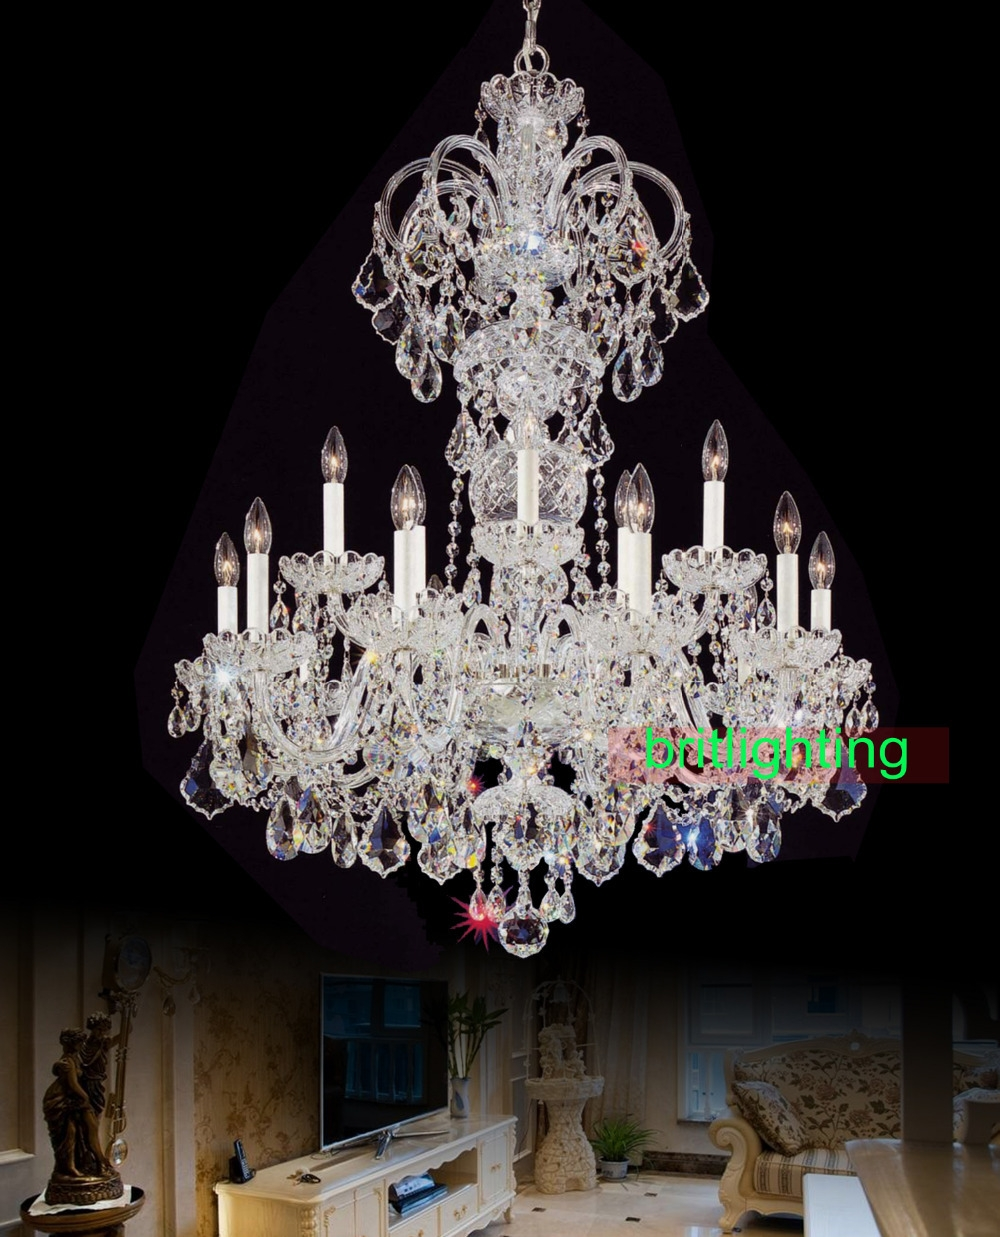 Online Buy Wholesale Big Chandelier From China Big Chandelier Regarding Huge Crystal Chandelier (Image 11 of 15)